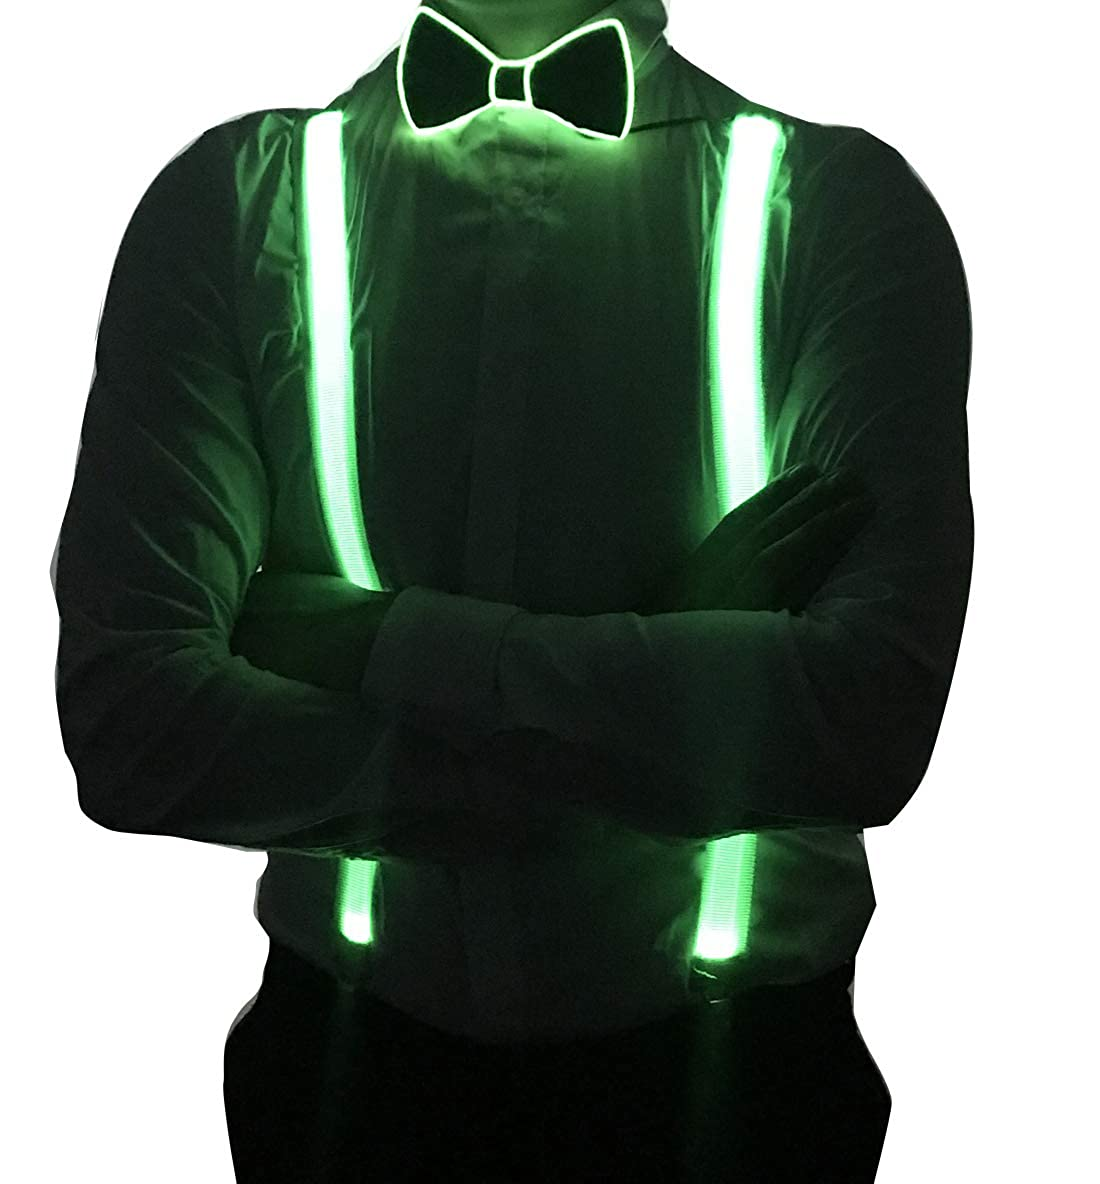 RaveLife Mens Light Up Novelty LED Suspenders for party Night Club Gift